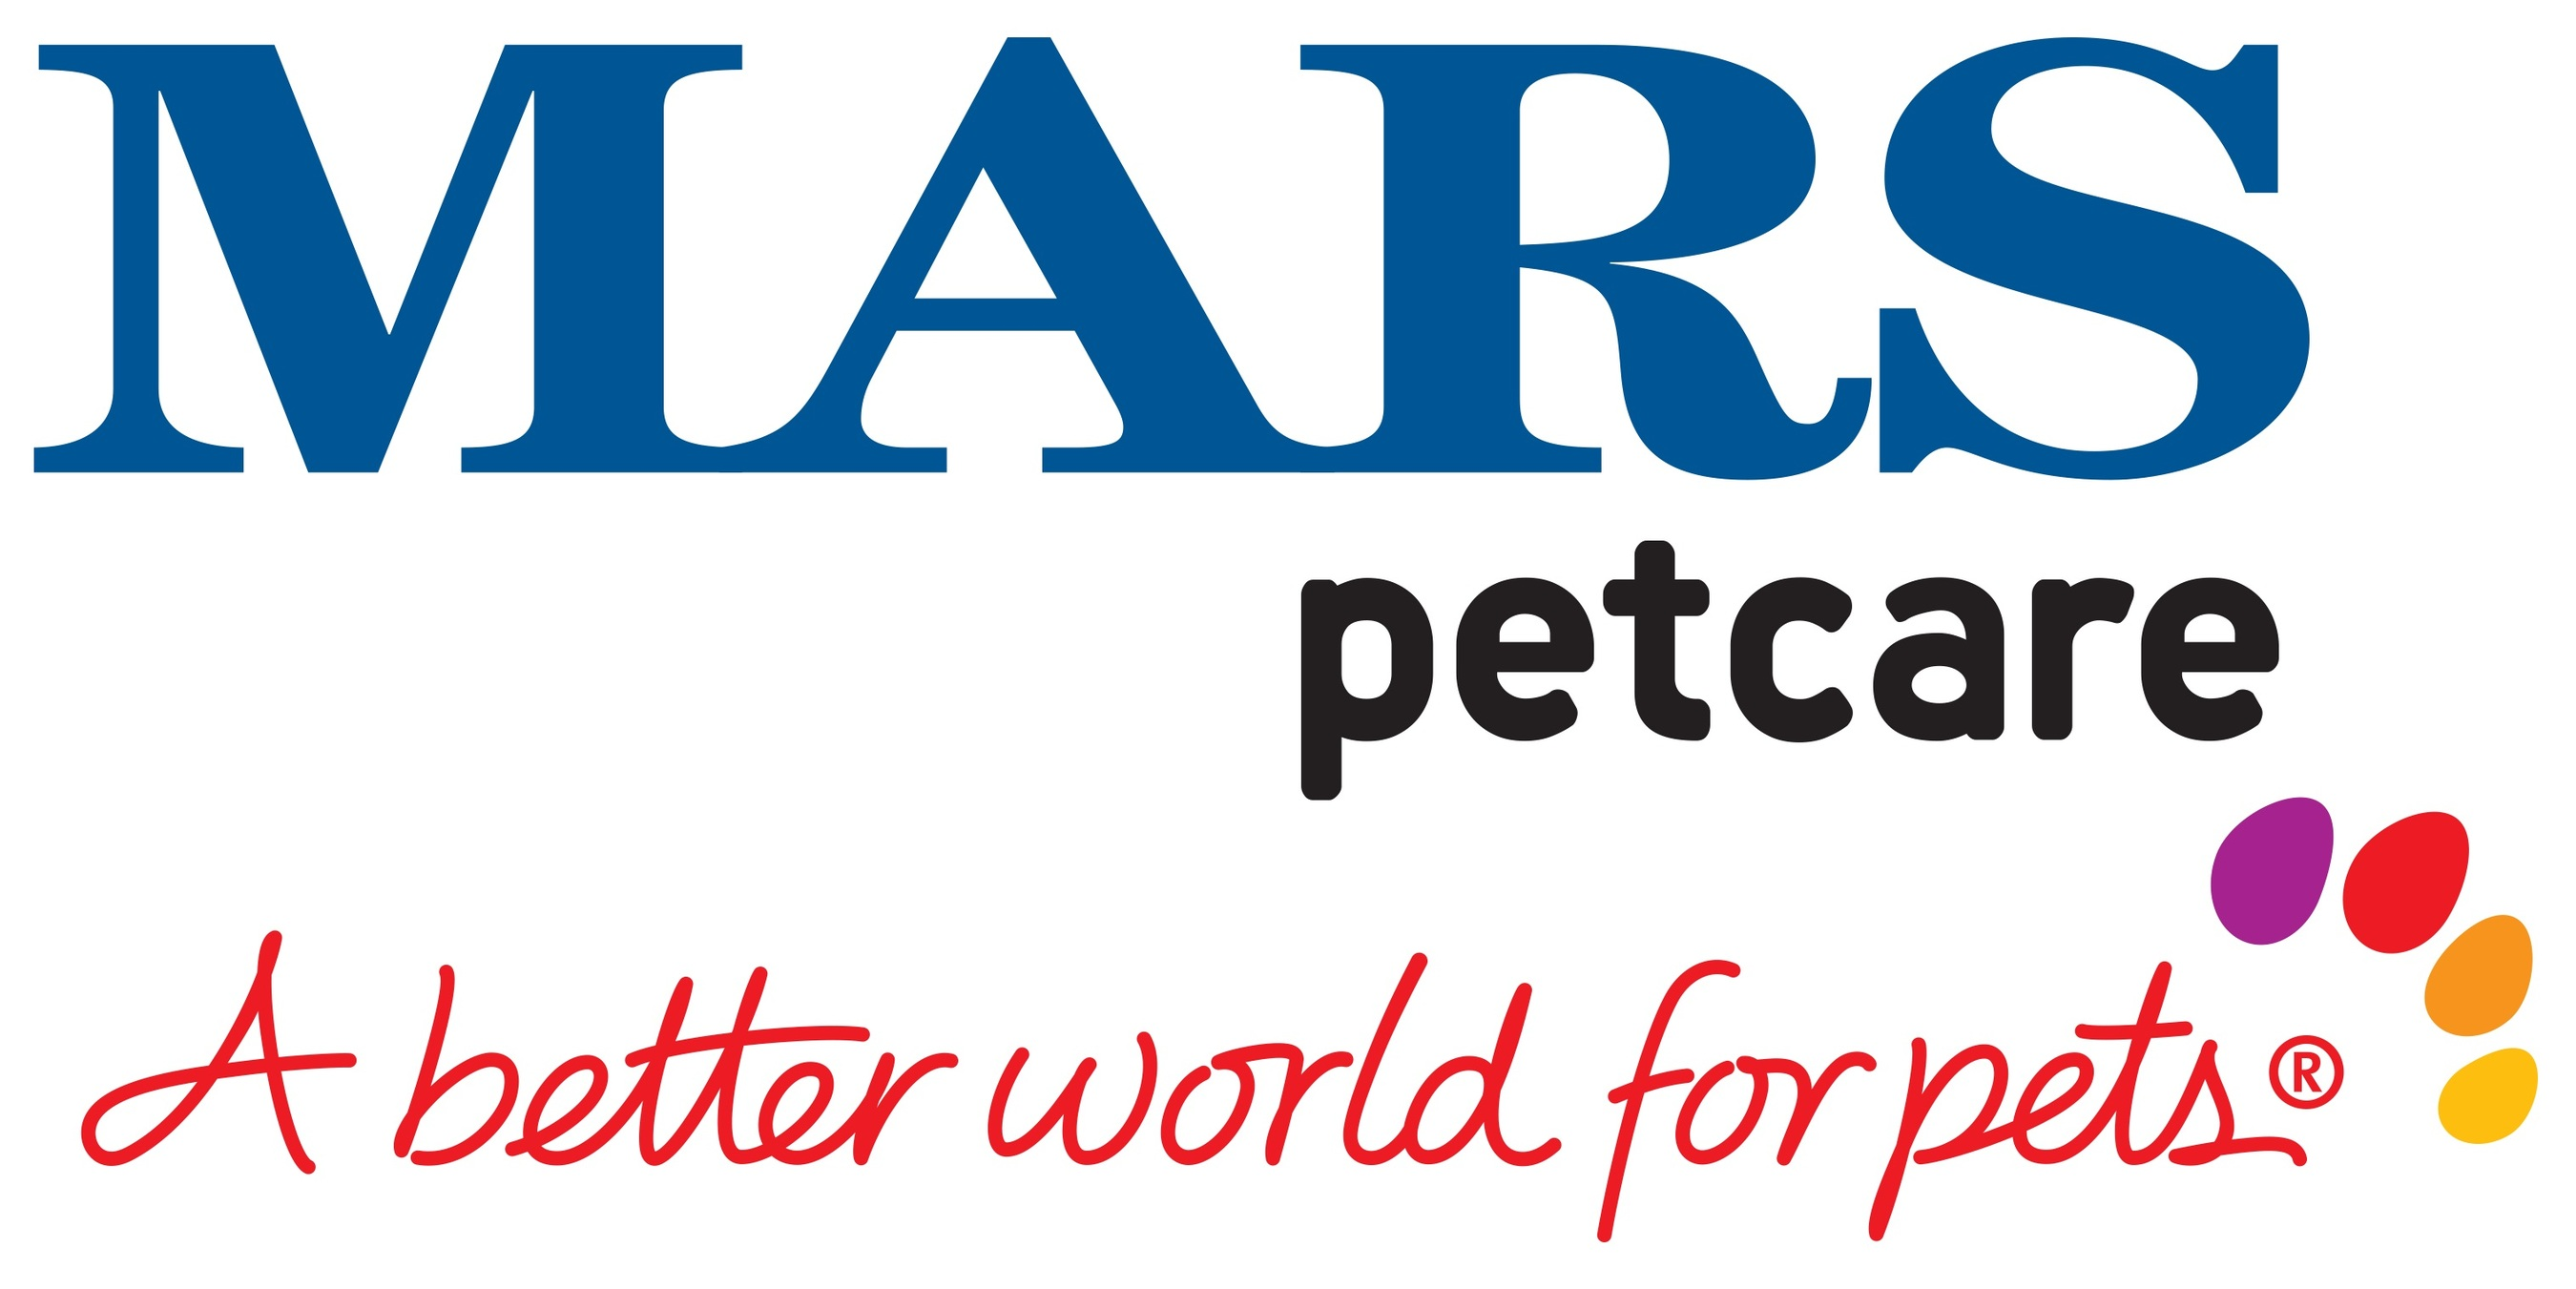 Mars Petcare: A better world for pets logo